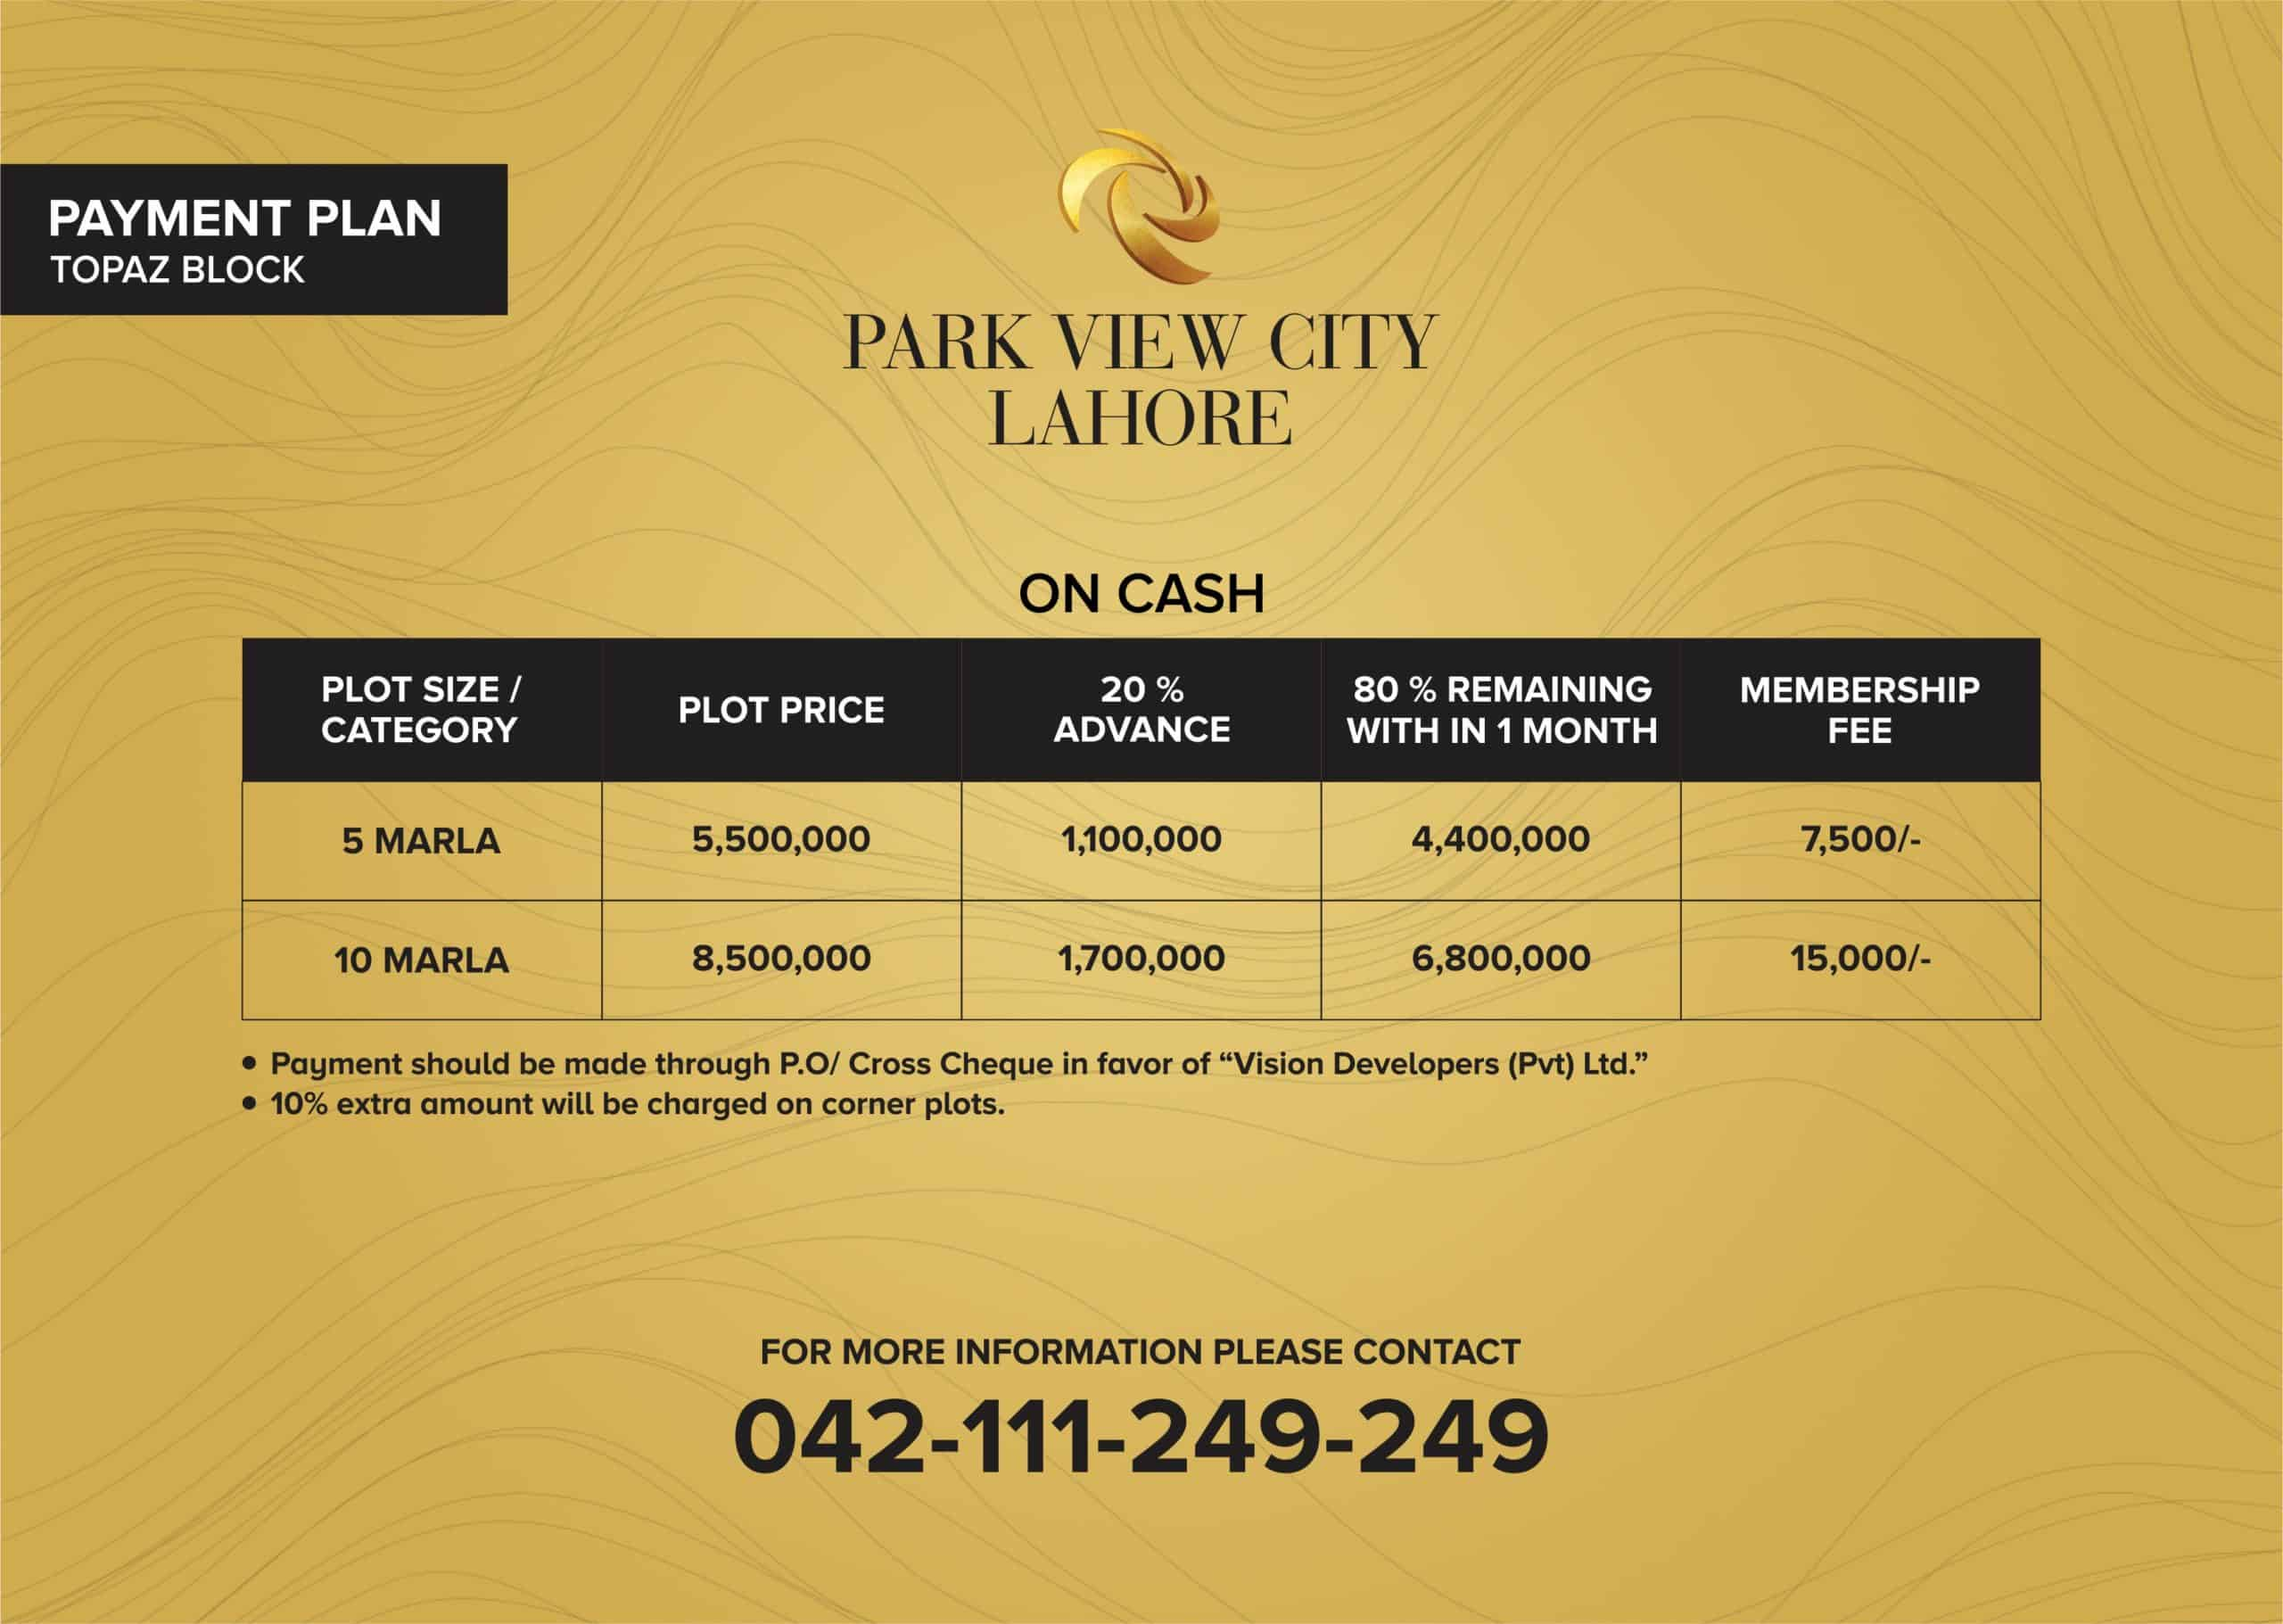 PAYMENT-PLAN-PVCL-TOPAZ-BLOCK-scaled-1